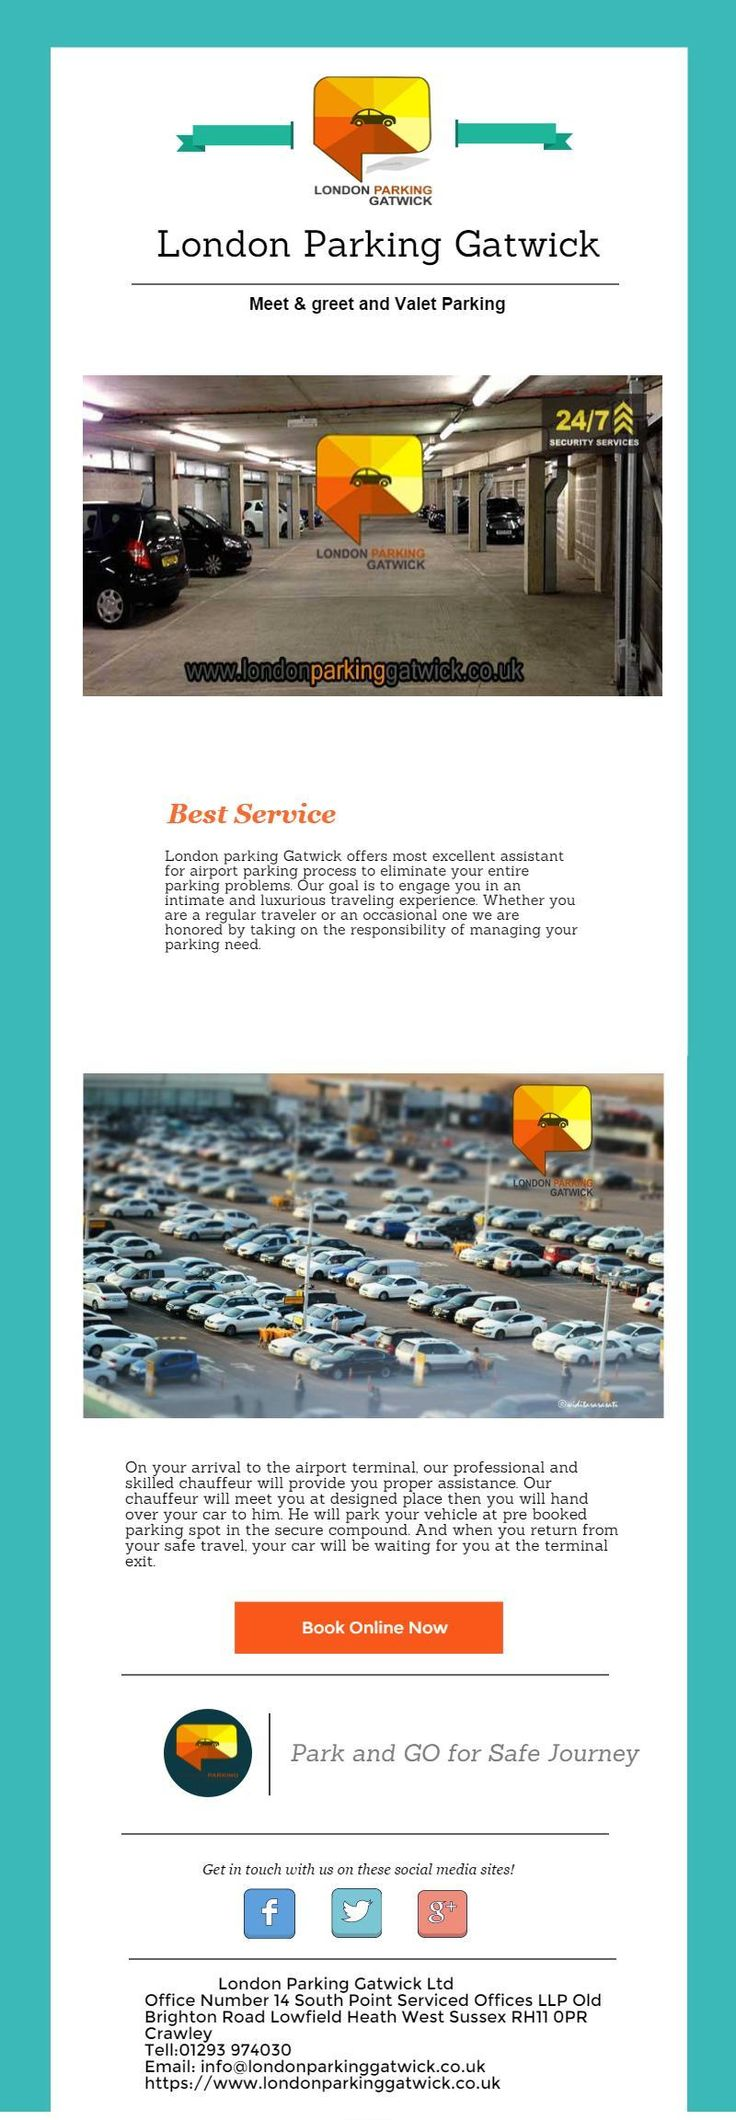 16 best valet parking gatwick images on pinterest gatwick airport find this pin and more on valet parking gatwick by londonparkingga kristyandbryce Choice Image